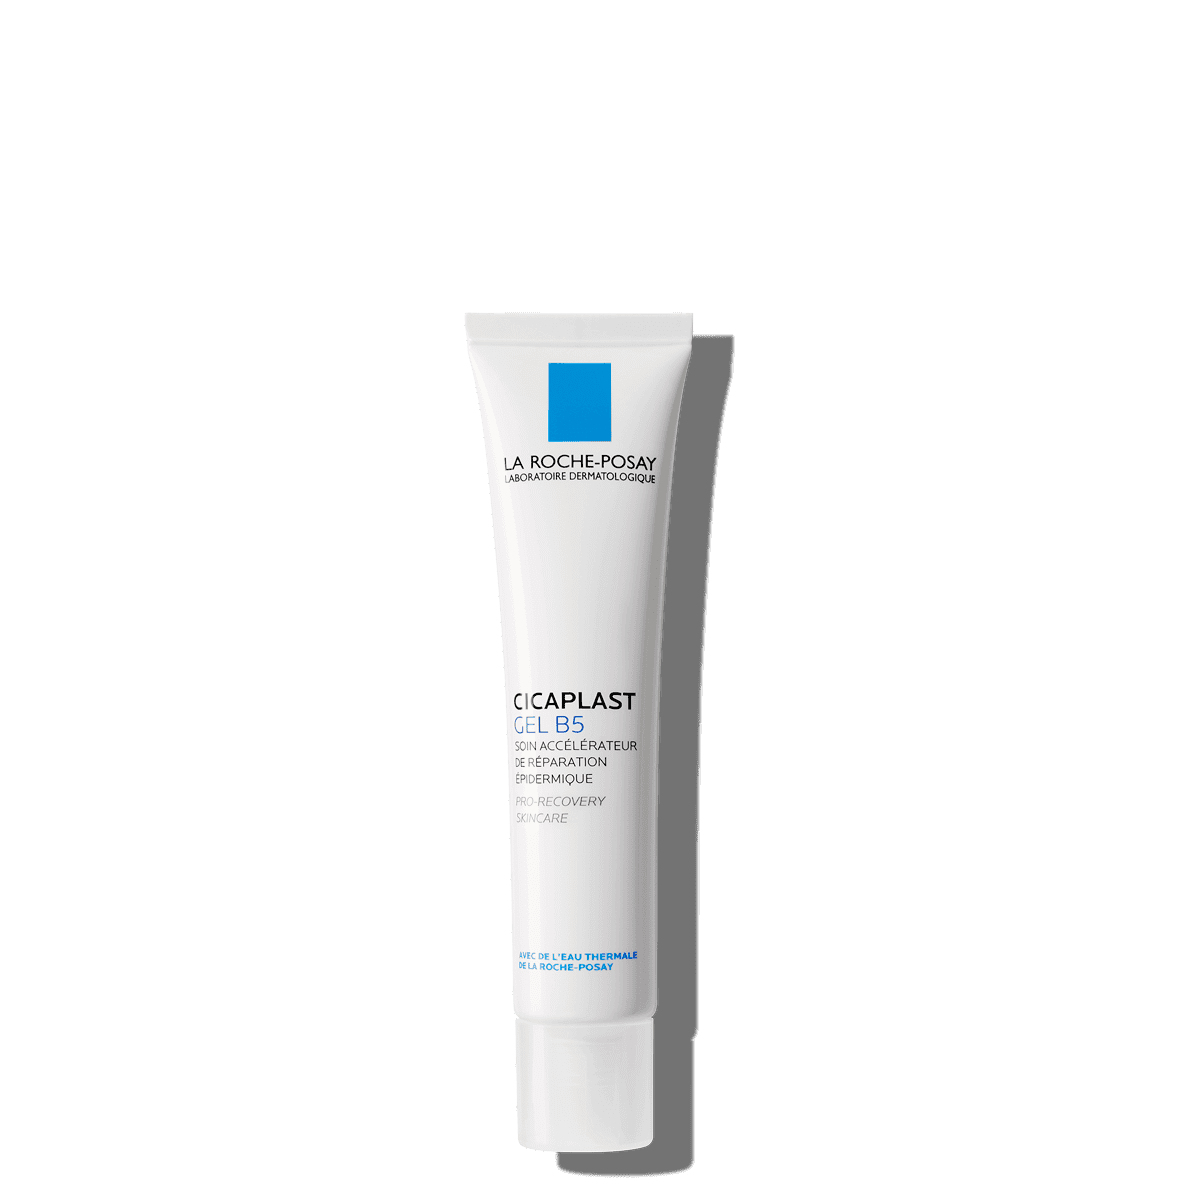 La Roche Posay ProductPage Damaged Cicaplast Gel B5 Pro Recovery 40ml